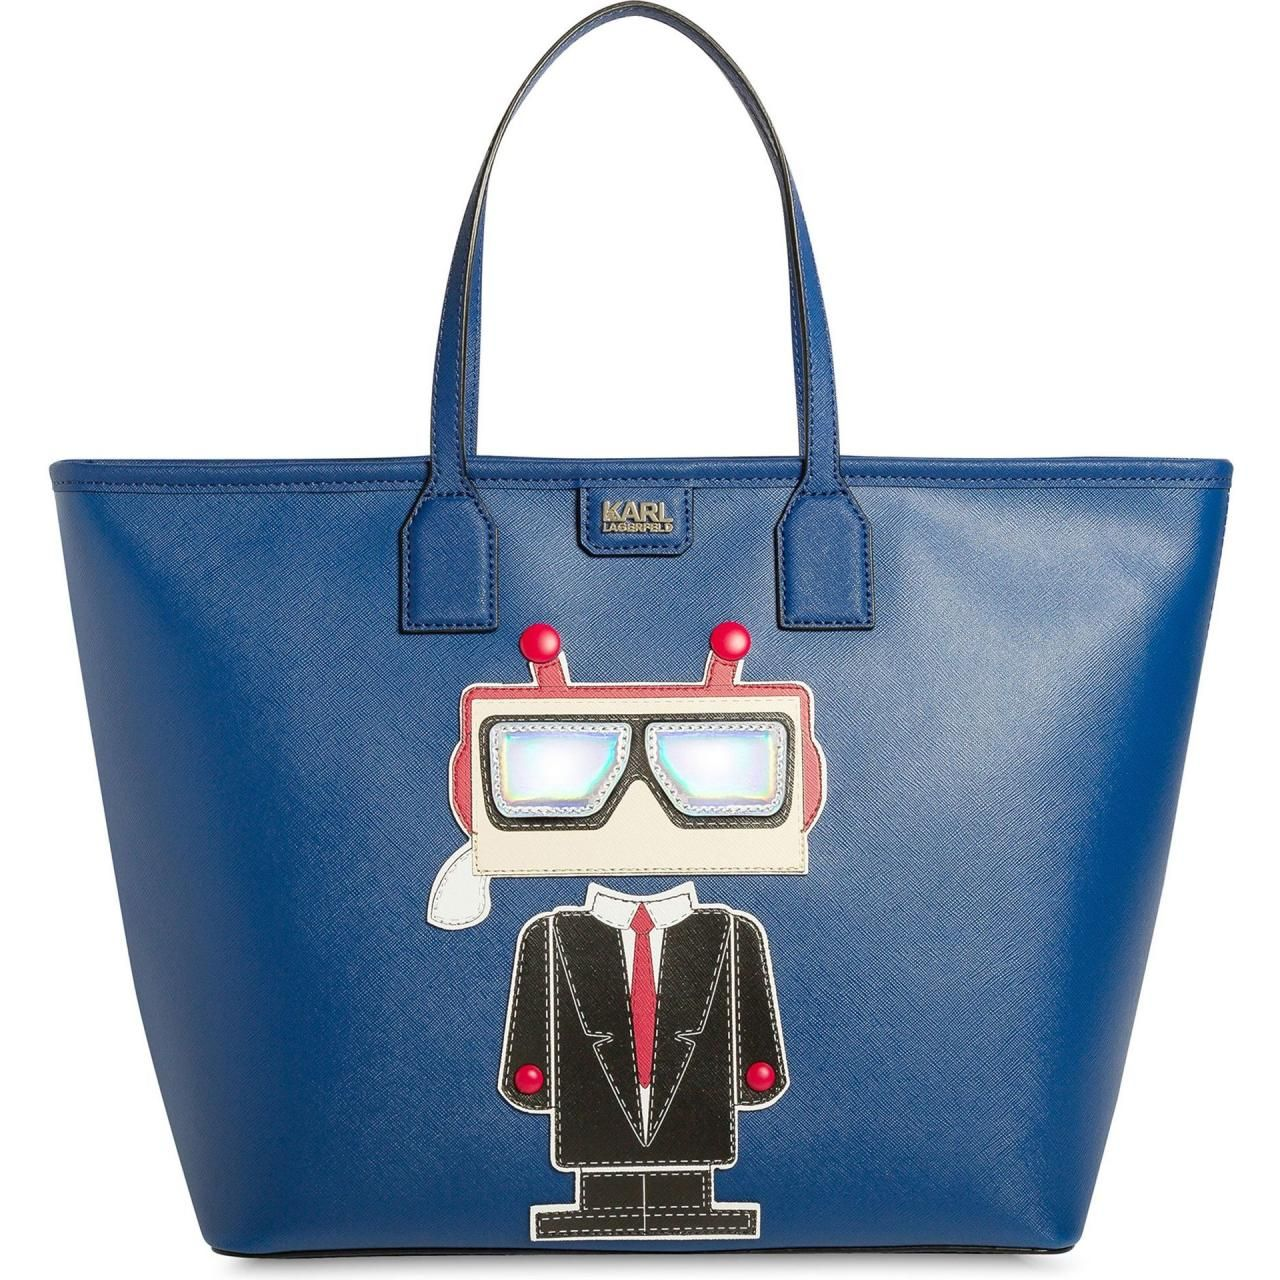 Karl Lagerfeld Robot Shopper in Ink Blue as seen on Kendall Jenner